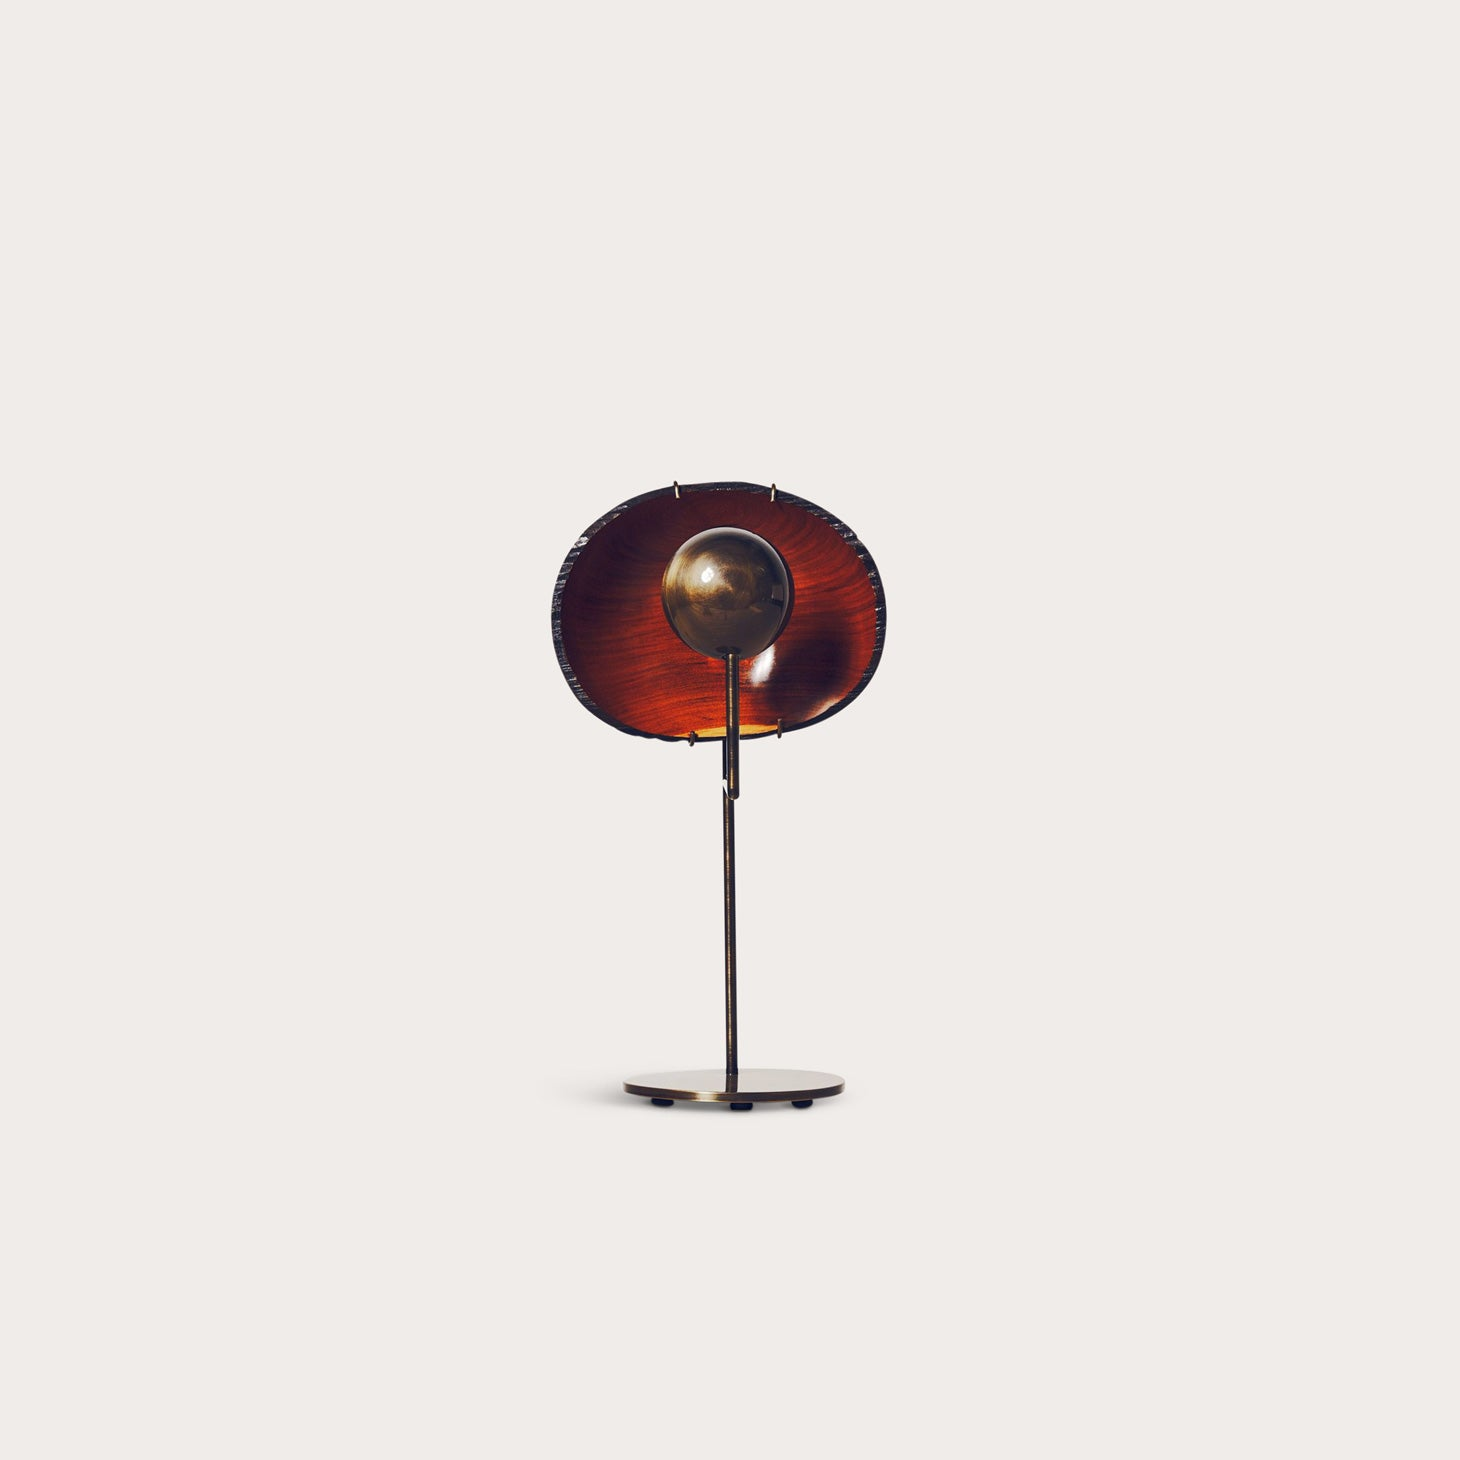 Cantante Table Lamp Lighting Claudia Moreira Salles Designer Furniture Sku: 003-160-10013